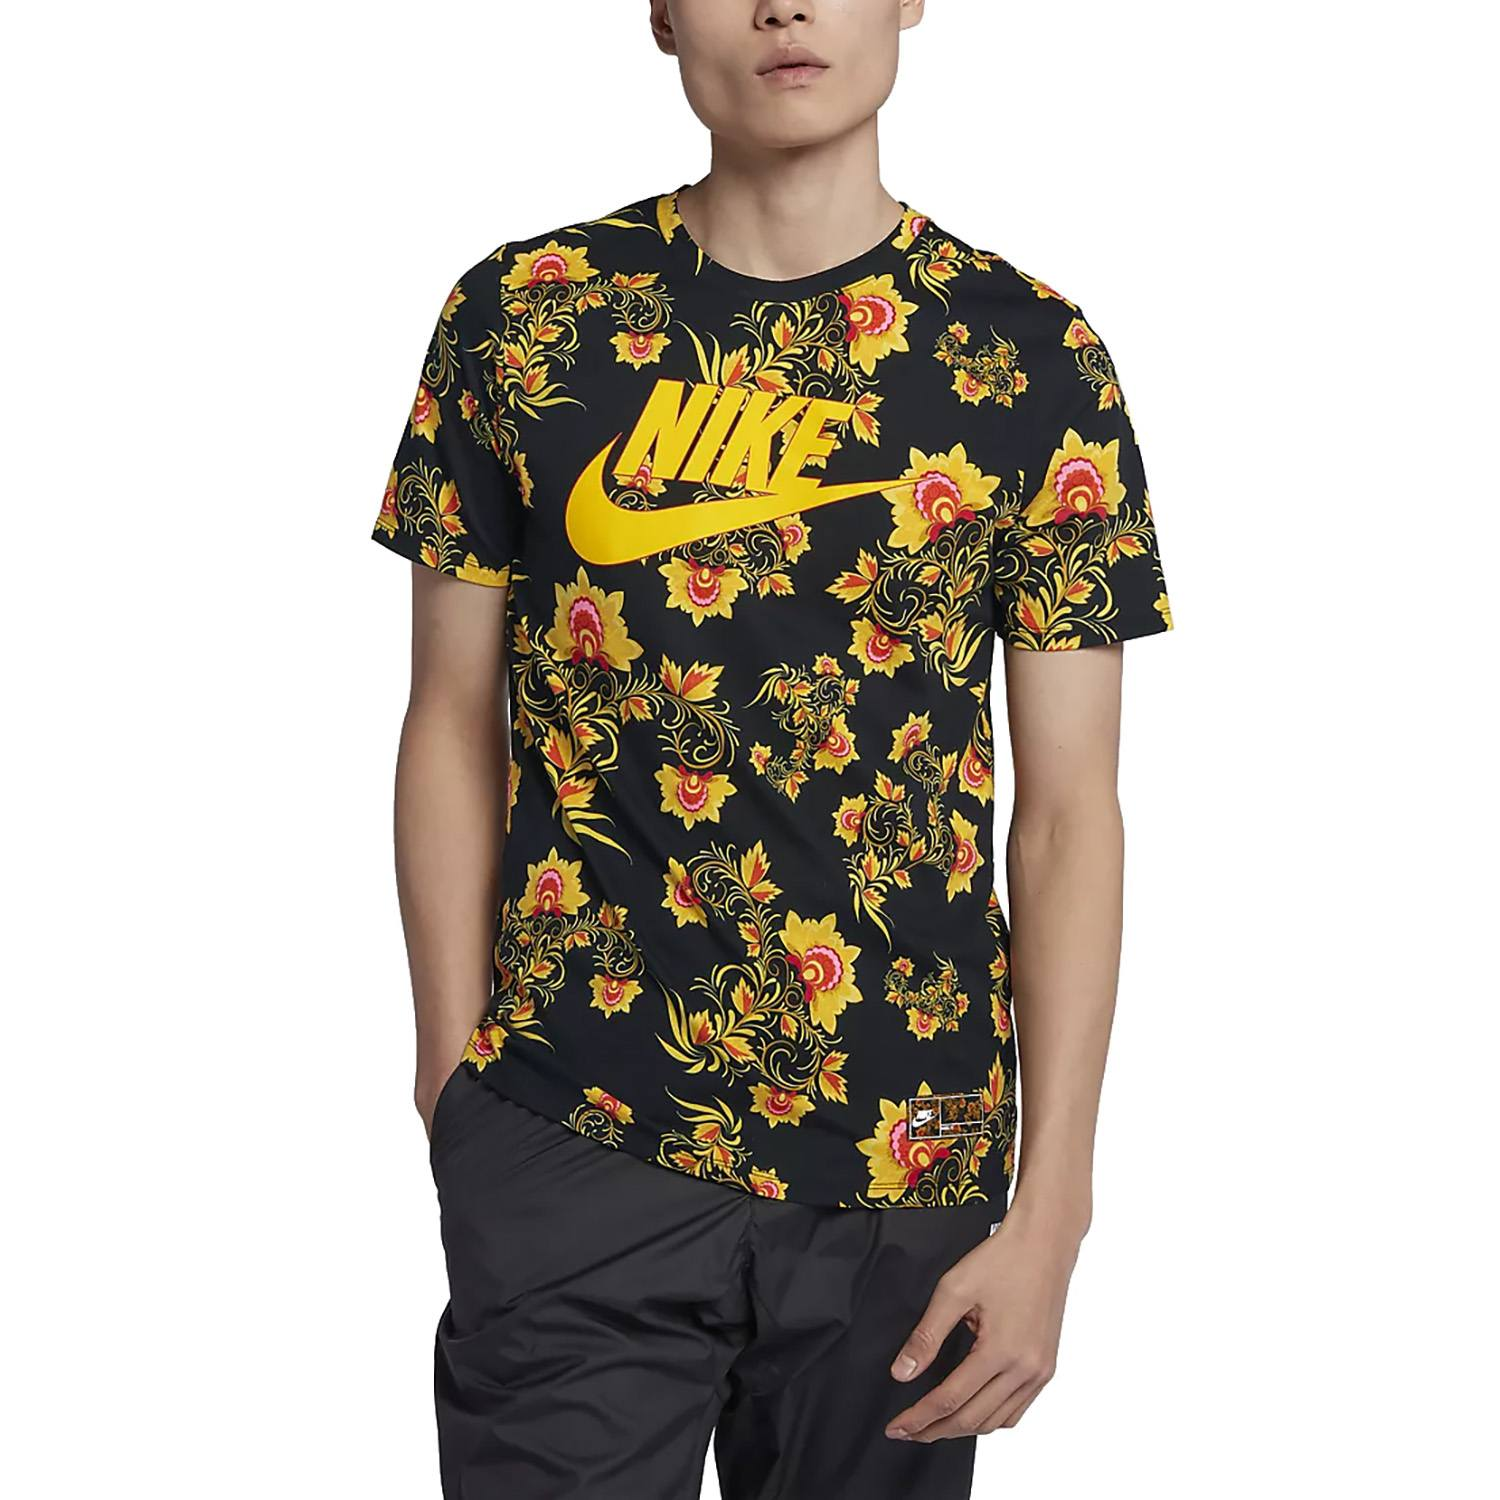 Nike nsw floral tee clothes shirts sporting goods for Kd t shirt nike